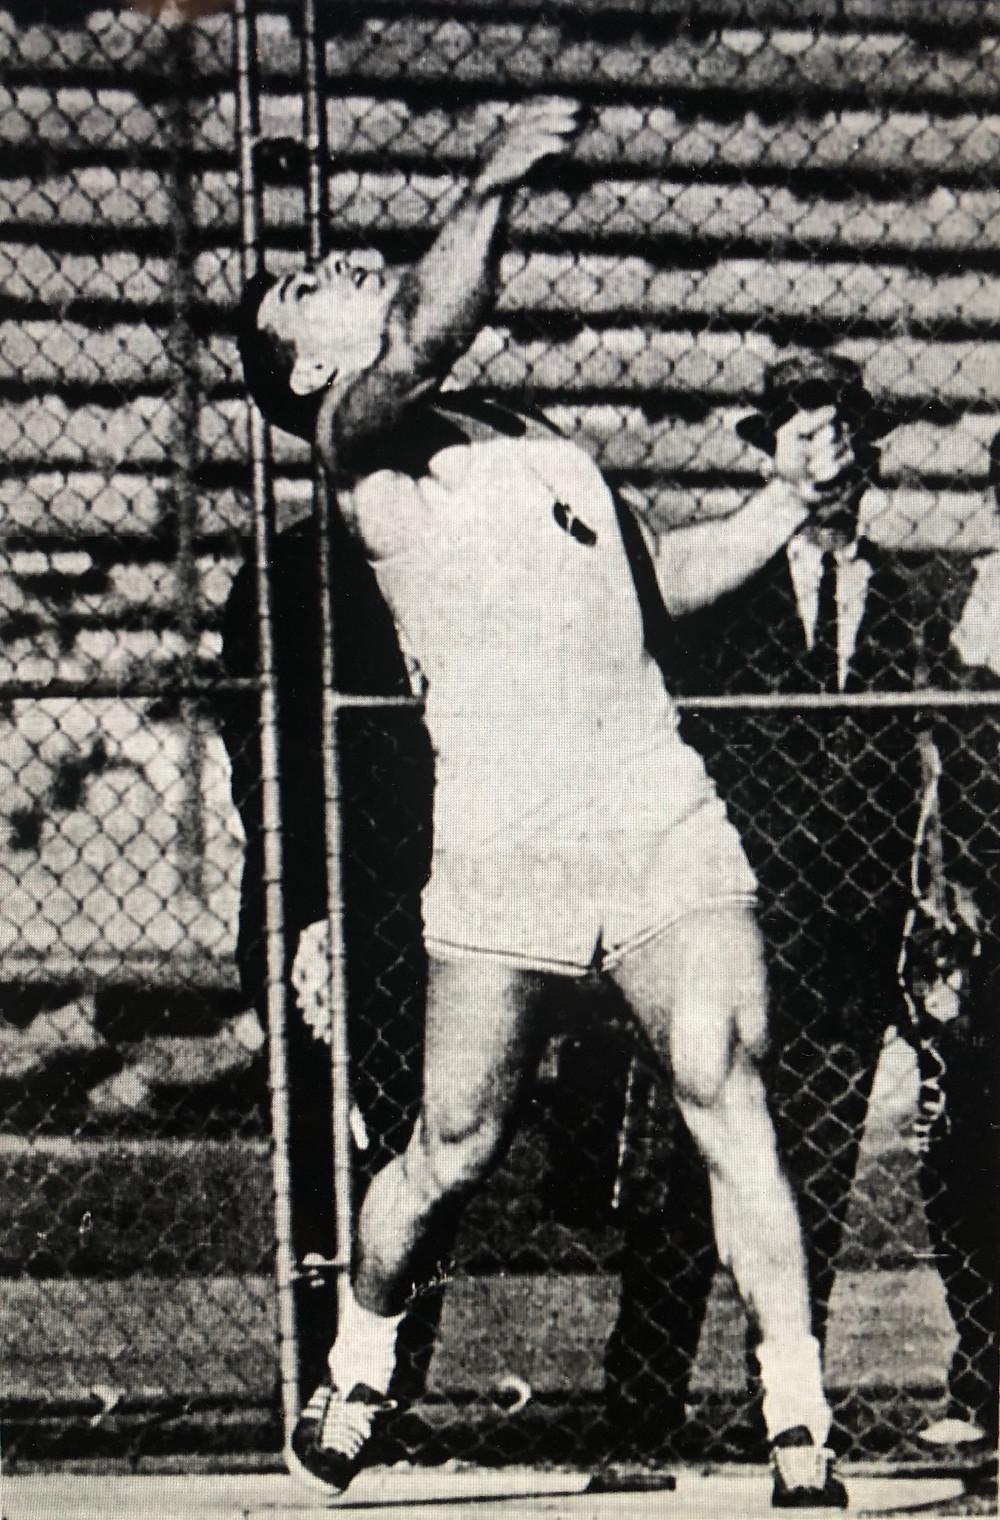 Al Oerter breaks the 200 foot discus barrier (05/18/1968)